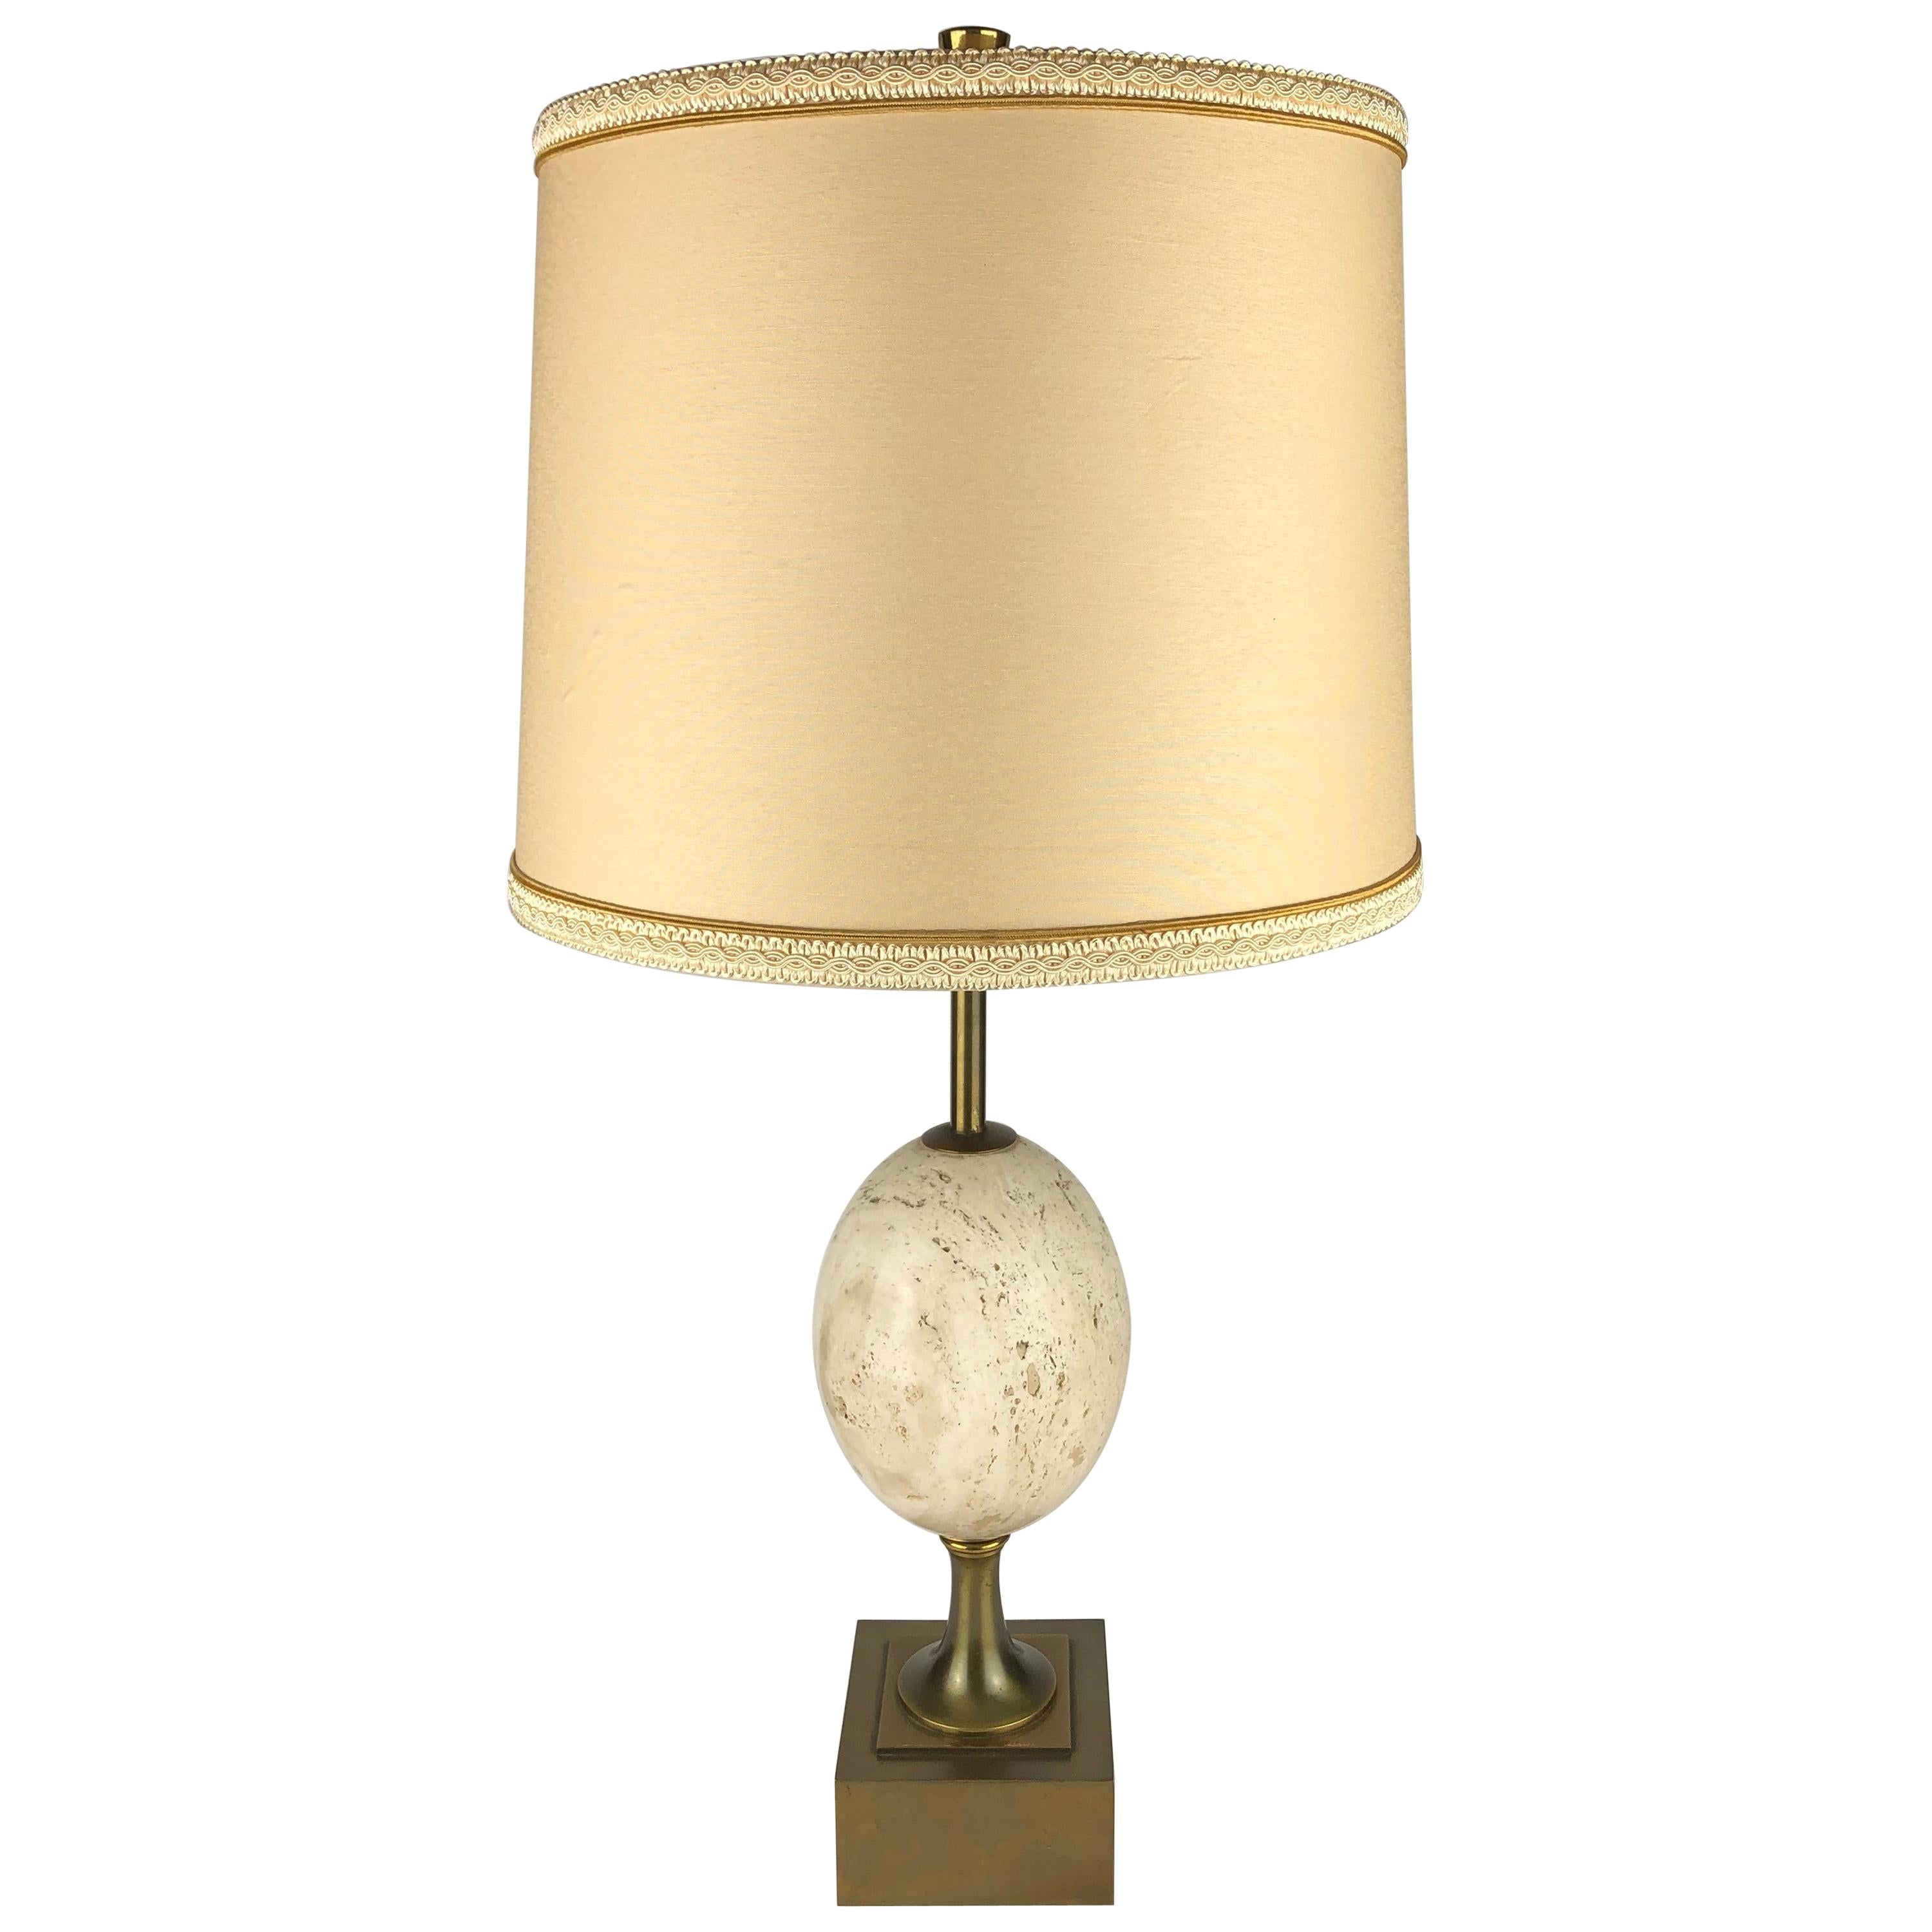 Signed Maison Charles Travertine Table Lamp with Brass Mounts